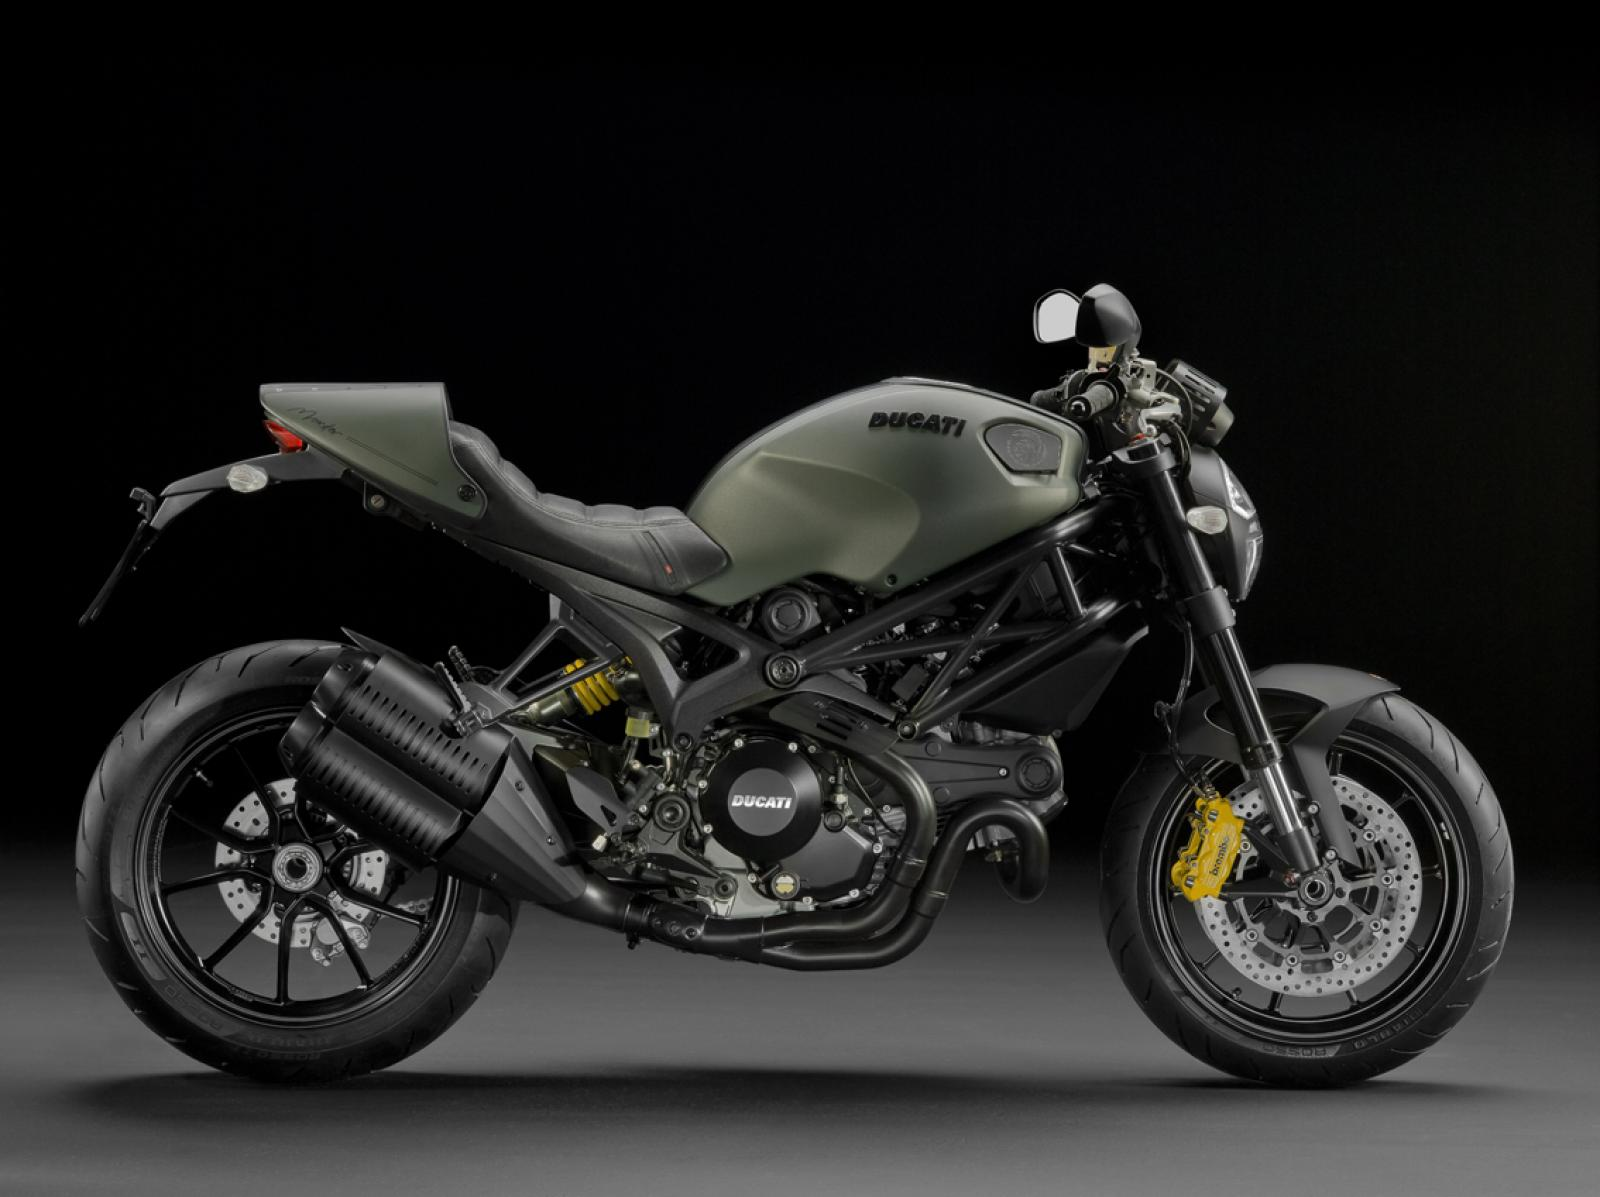 Ducati M 750 Dark wallpapers #12743